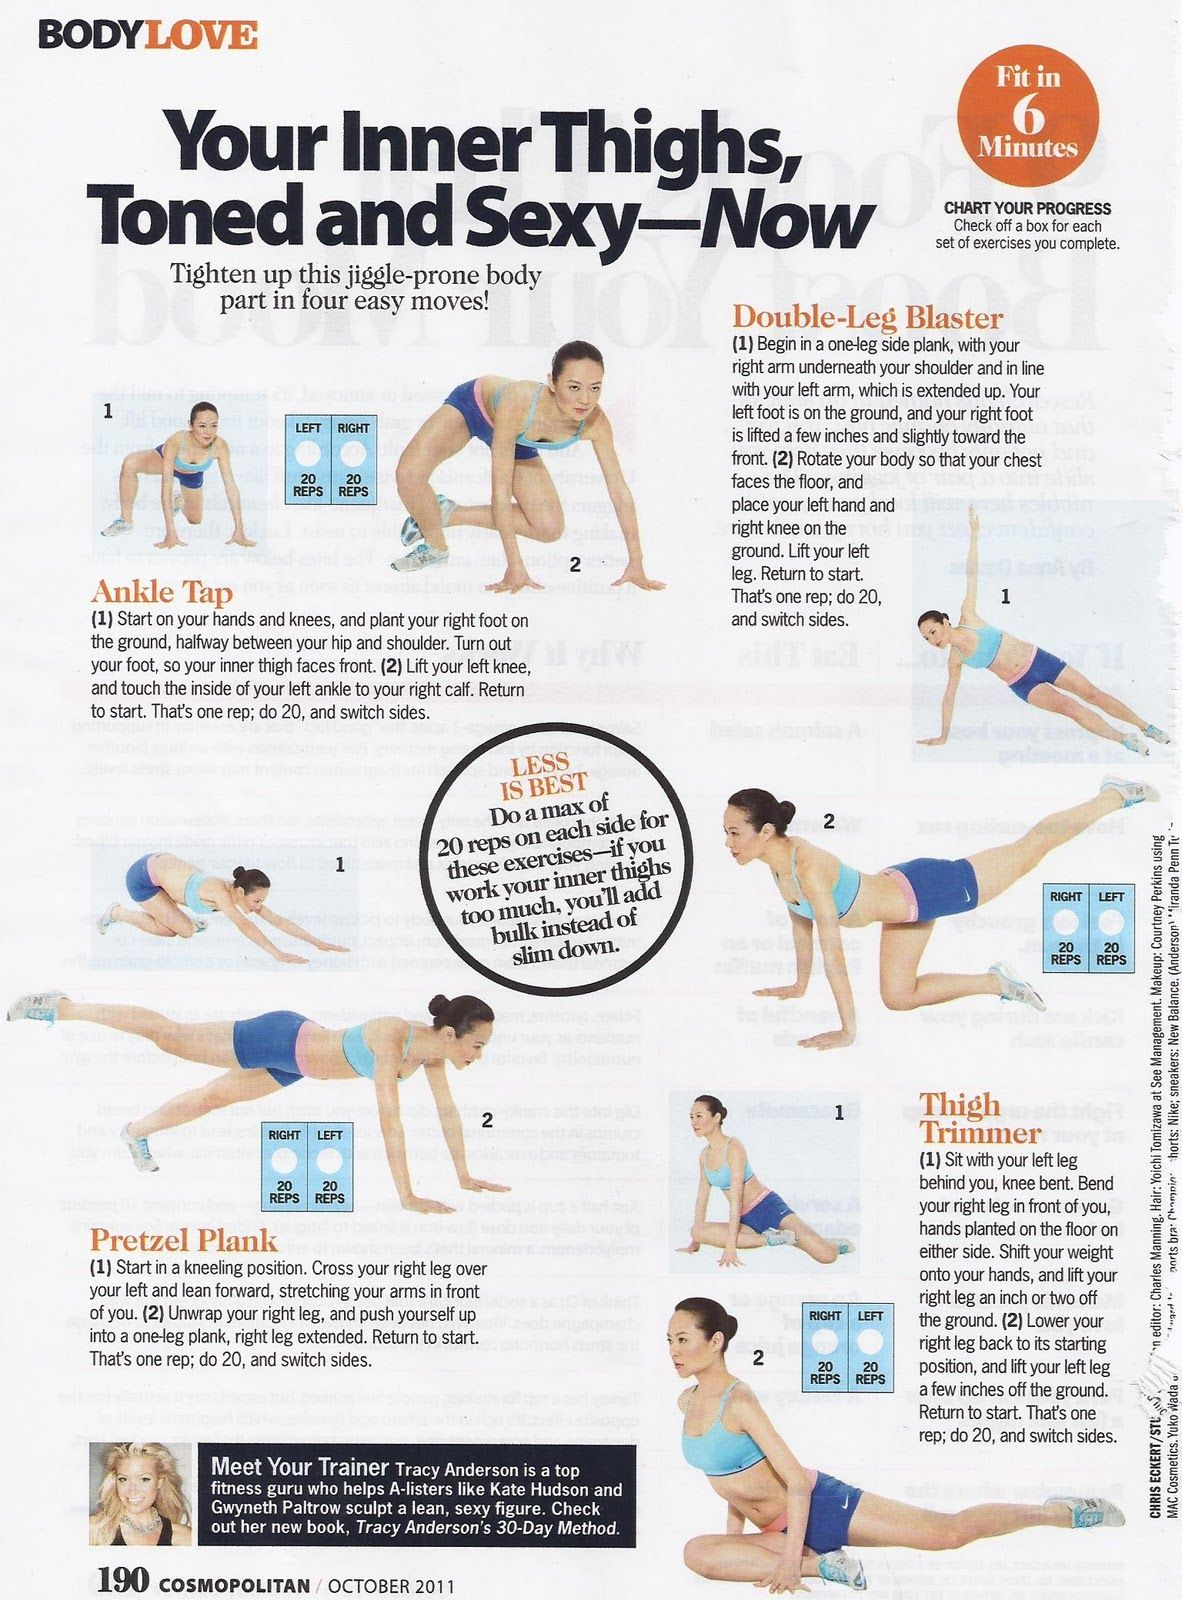 Inner Thighs; Tracy Anderson Method in Cosmopolitan; Fit in 6 minutes column